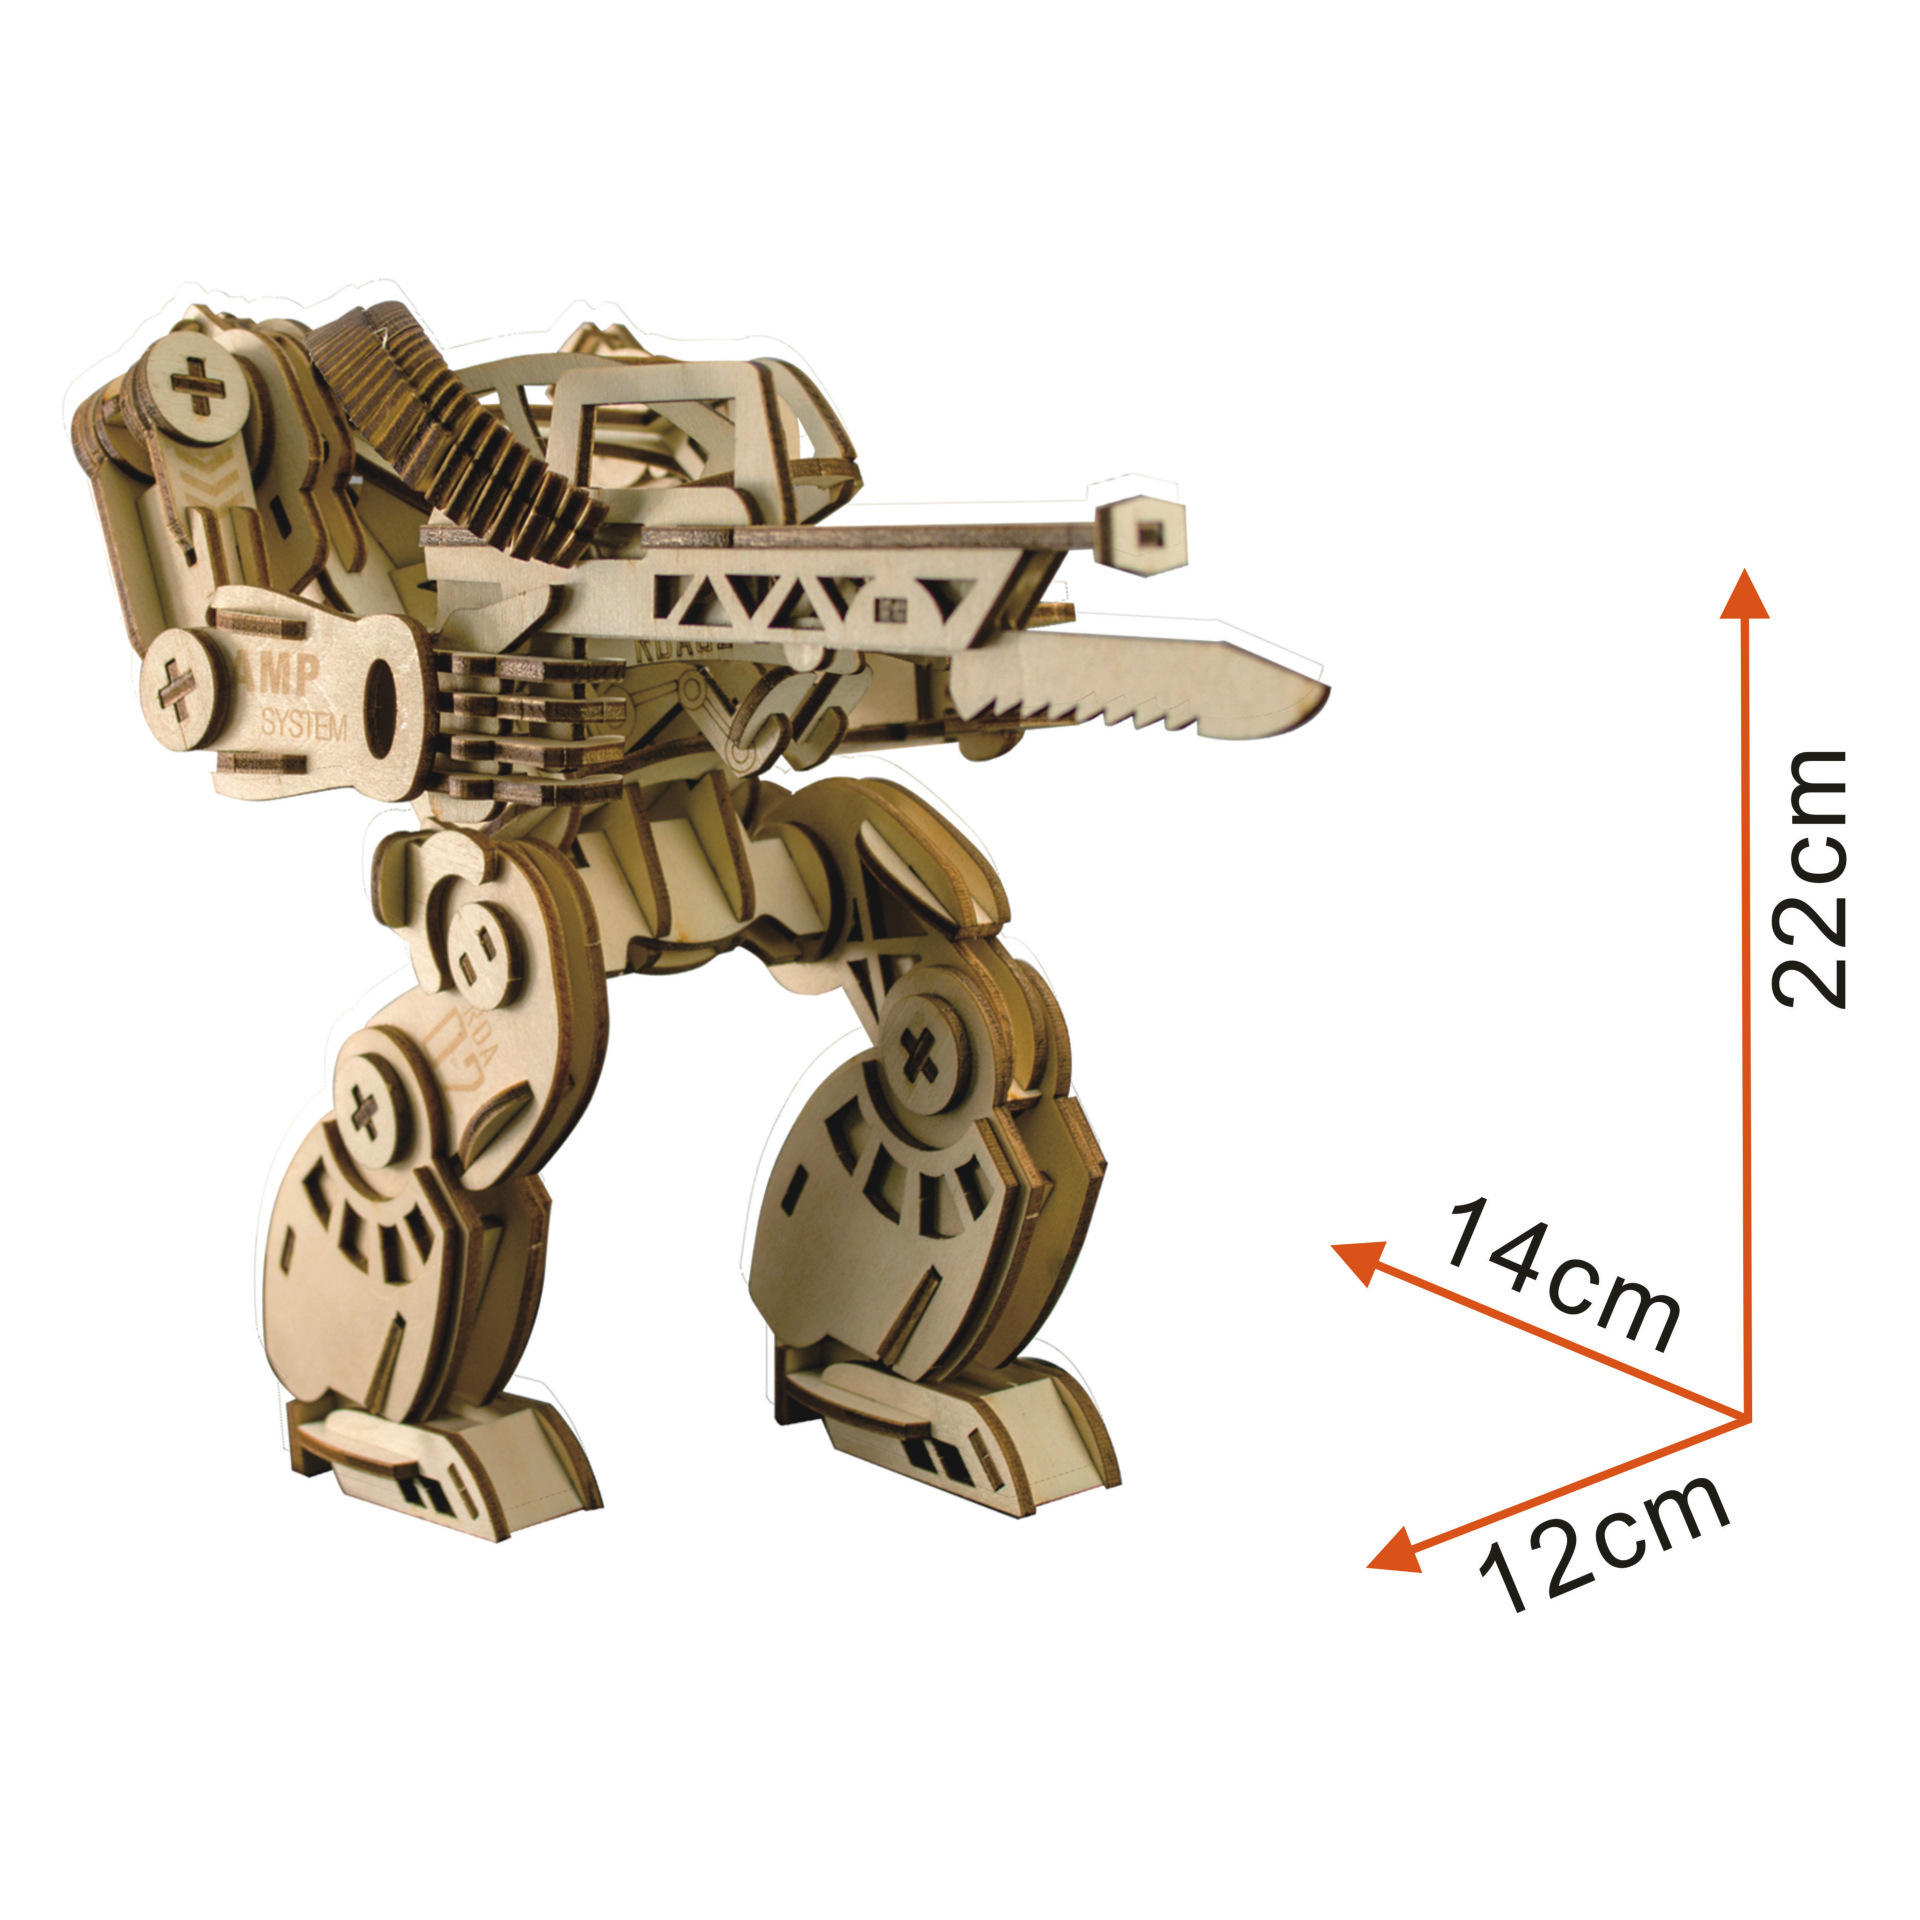 Oray Nature Wood 3D Assembly Jigsaw Toys Avatar Woodcraft Kit Wooden Puzzles Toy for Kids and Adults